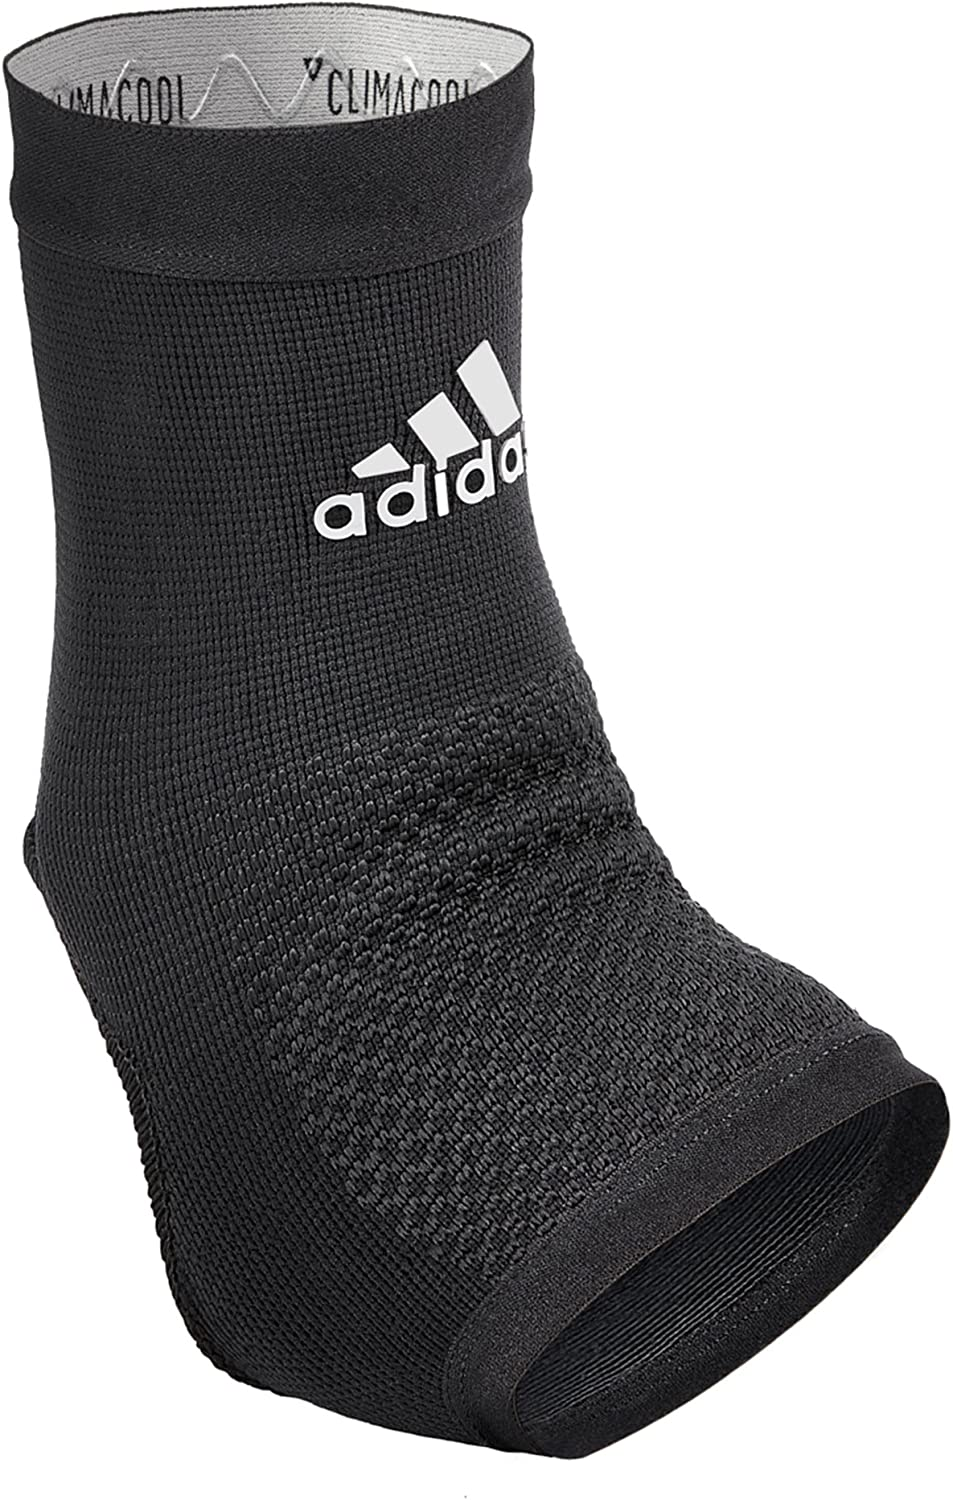 'Adidas Performance Climacool Ankle Compression Sleeve Support with Moisture Wicking Technology, Black, Size Small' 81WeNWPltoL